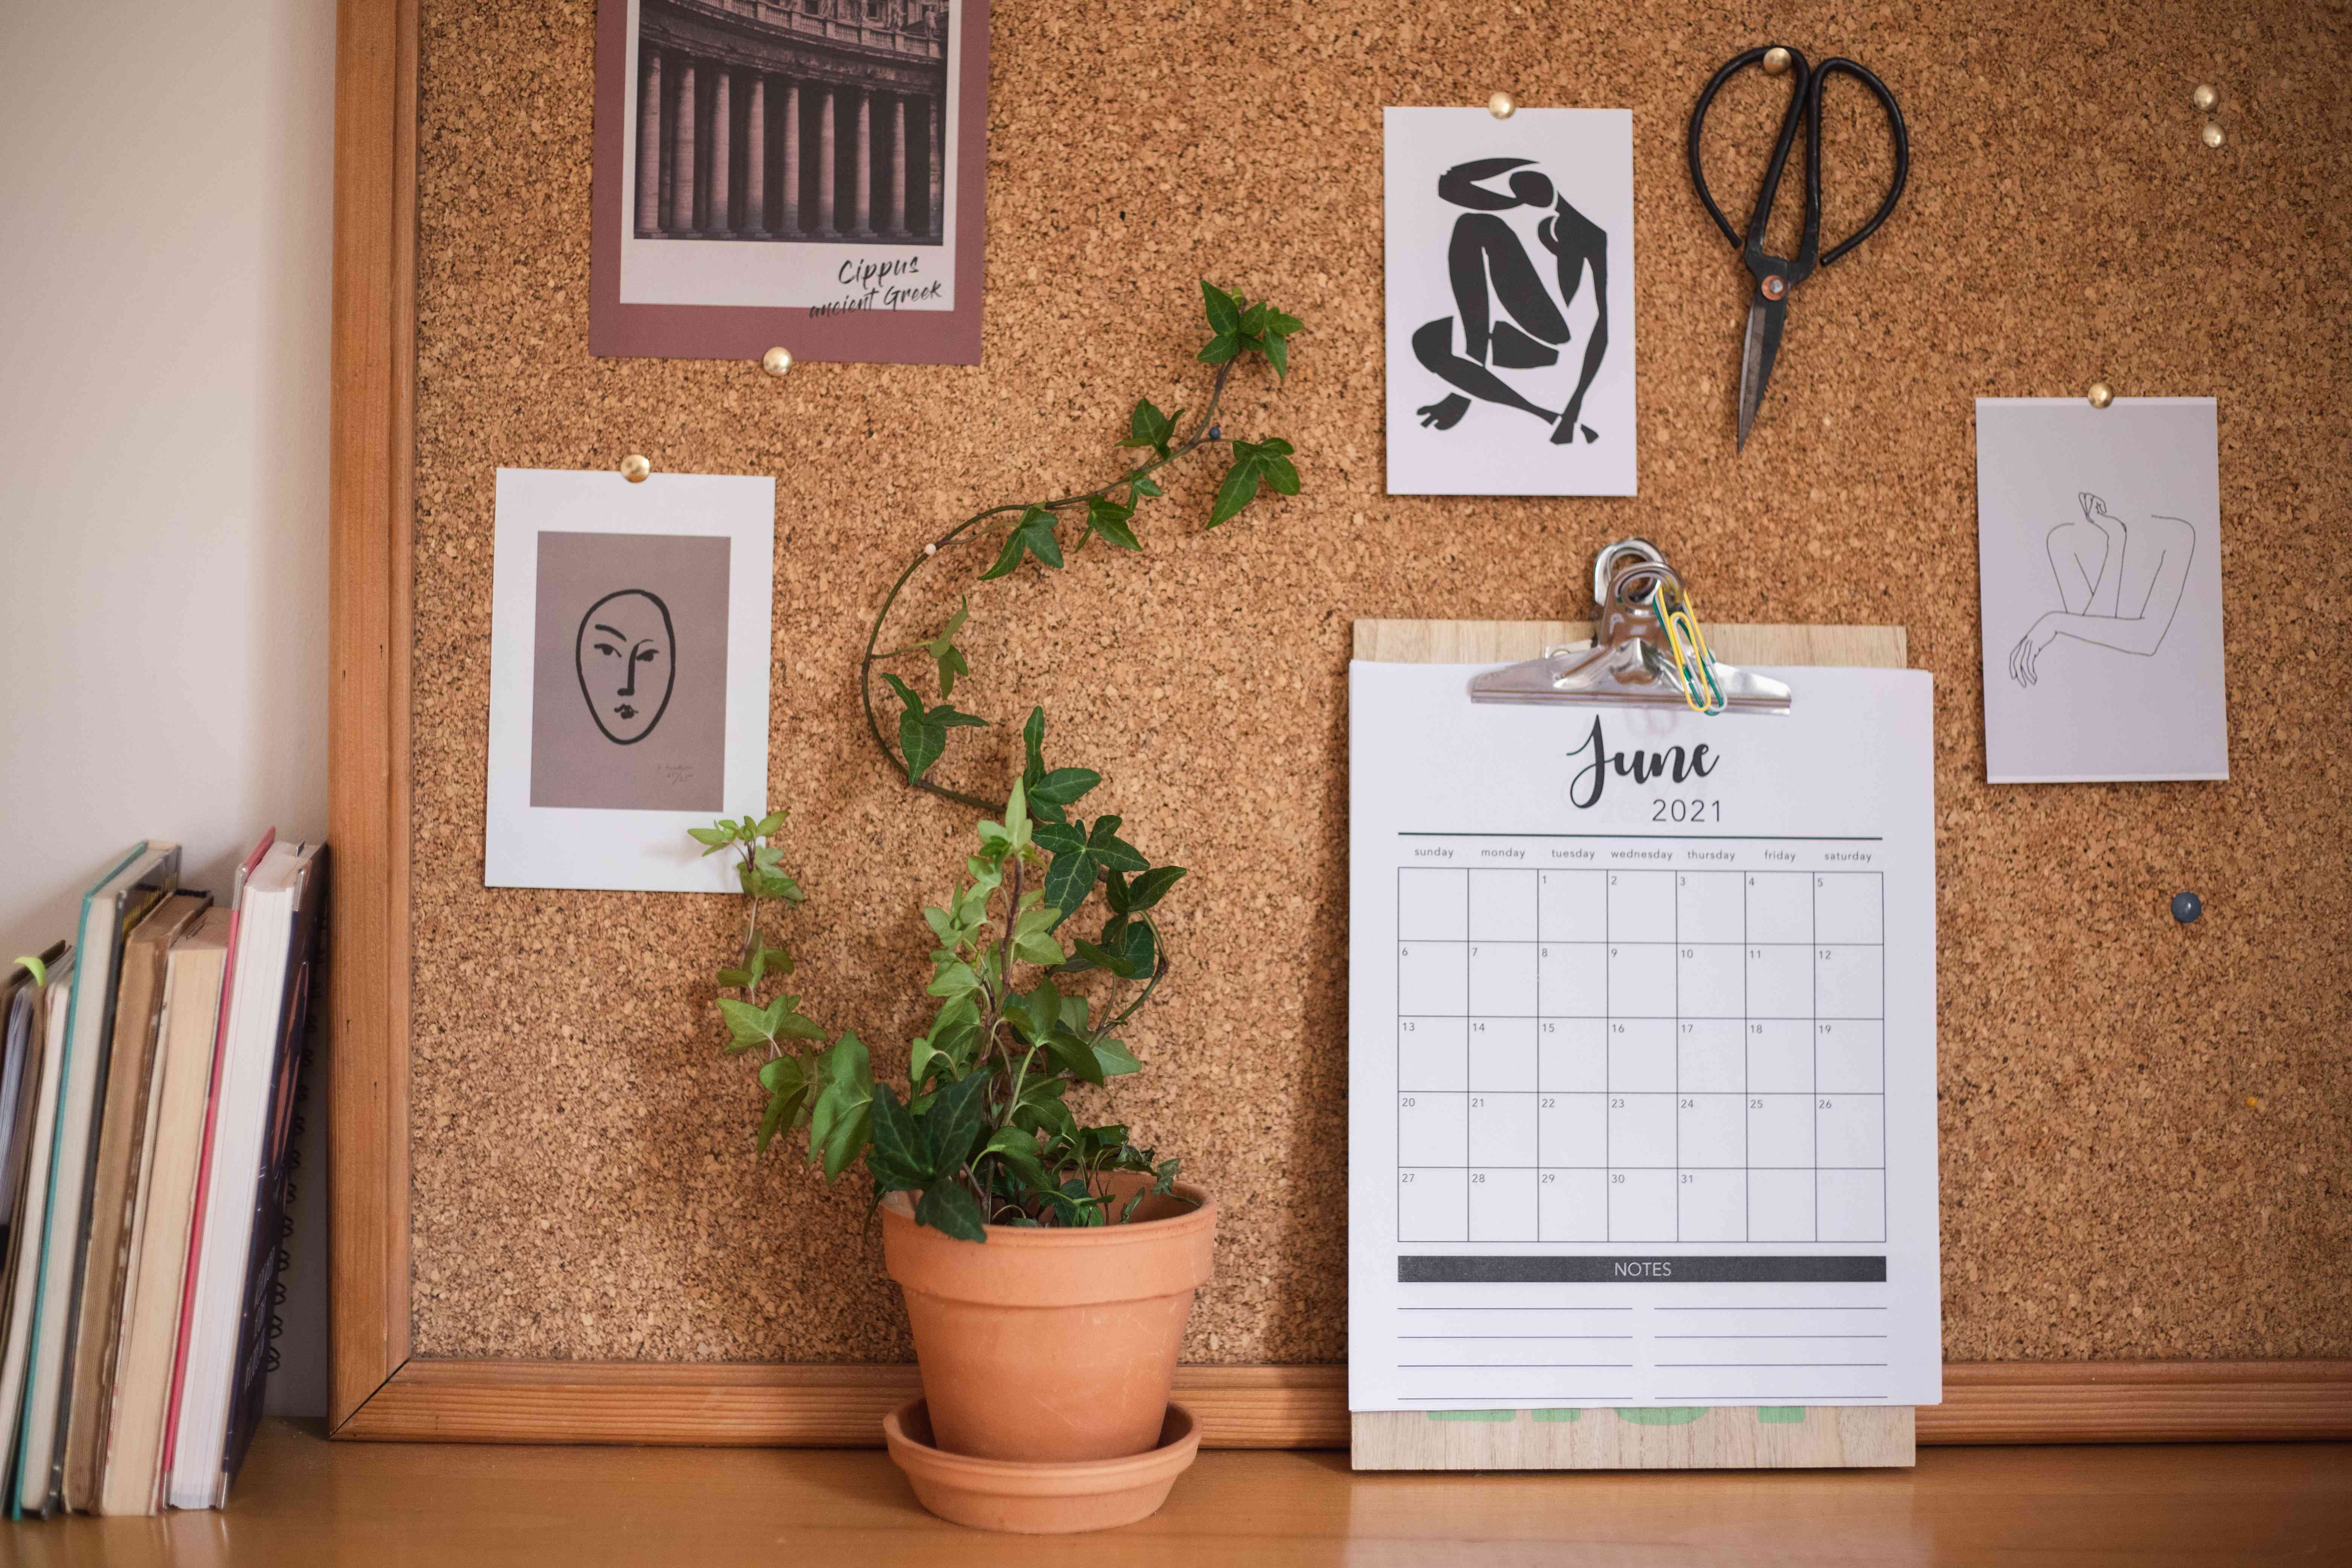 ivy houseplant trained to climb up a cork board pinned with various art